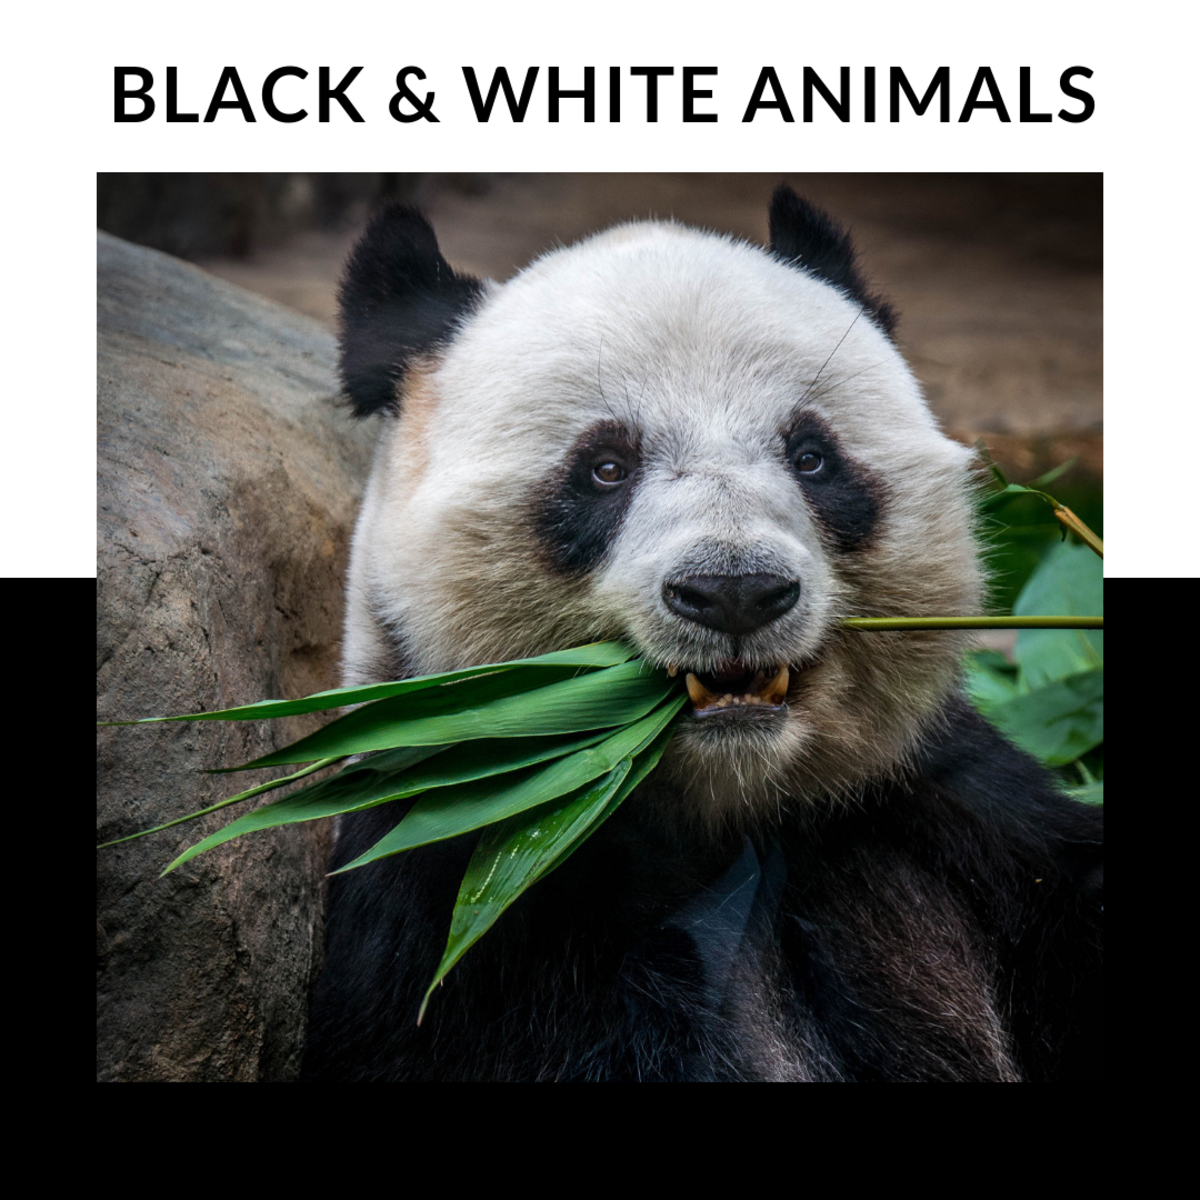 20 Black and White Animals With Names, Pictures, and Facts